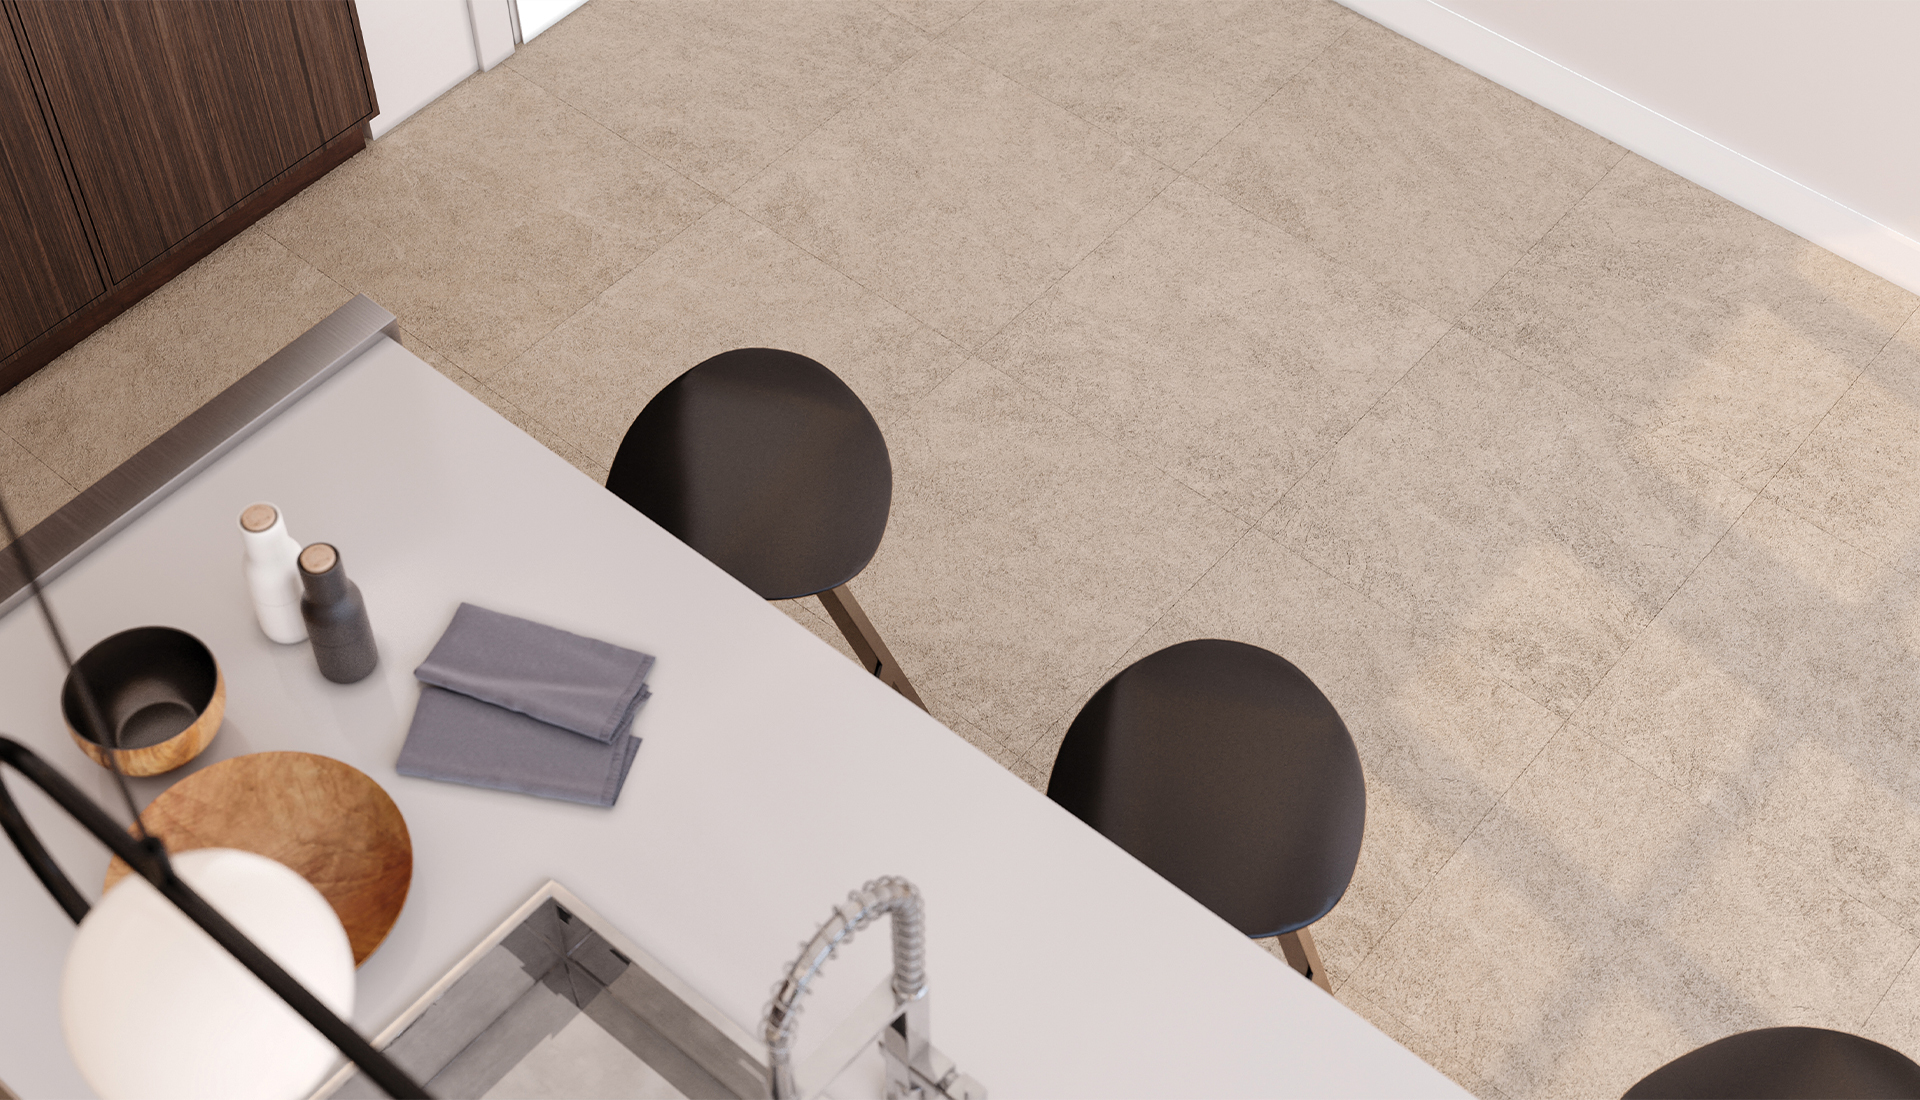 24 x 24 in / 60 x 60 cm Mayfair Allure Ivory Polished Rectified Glazed Porcelain Tile